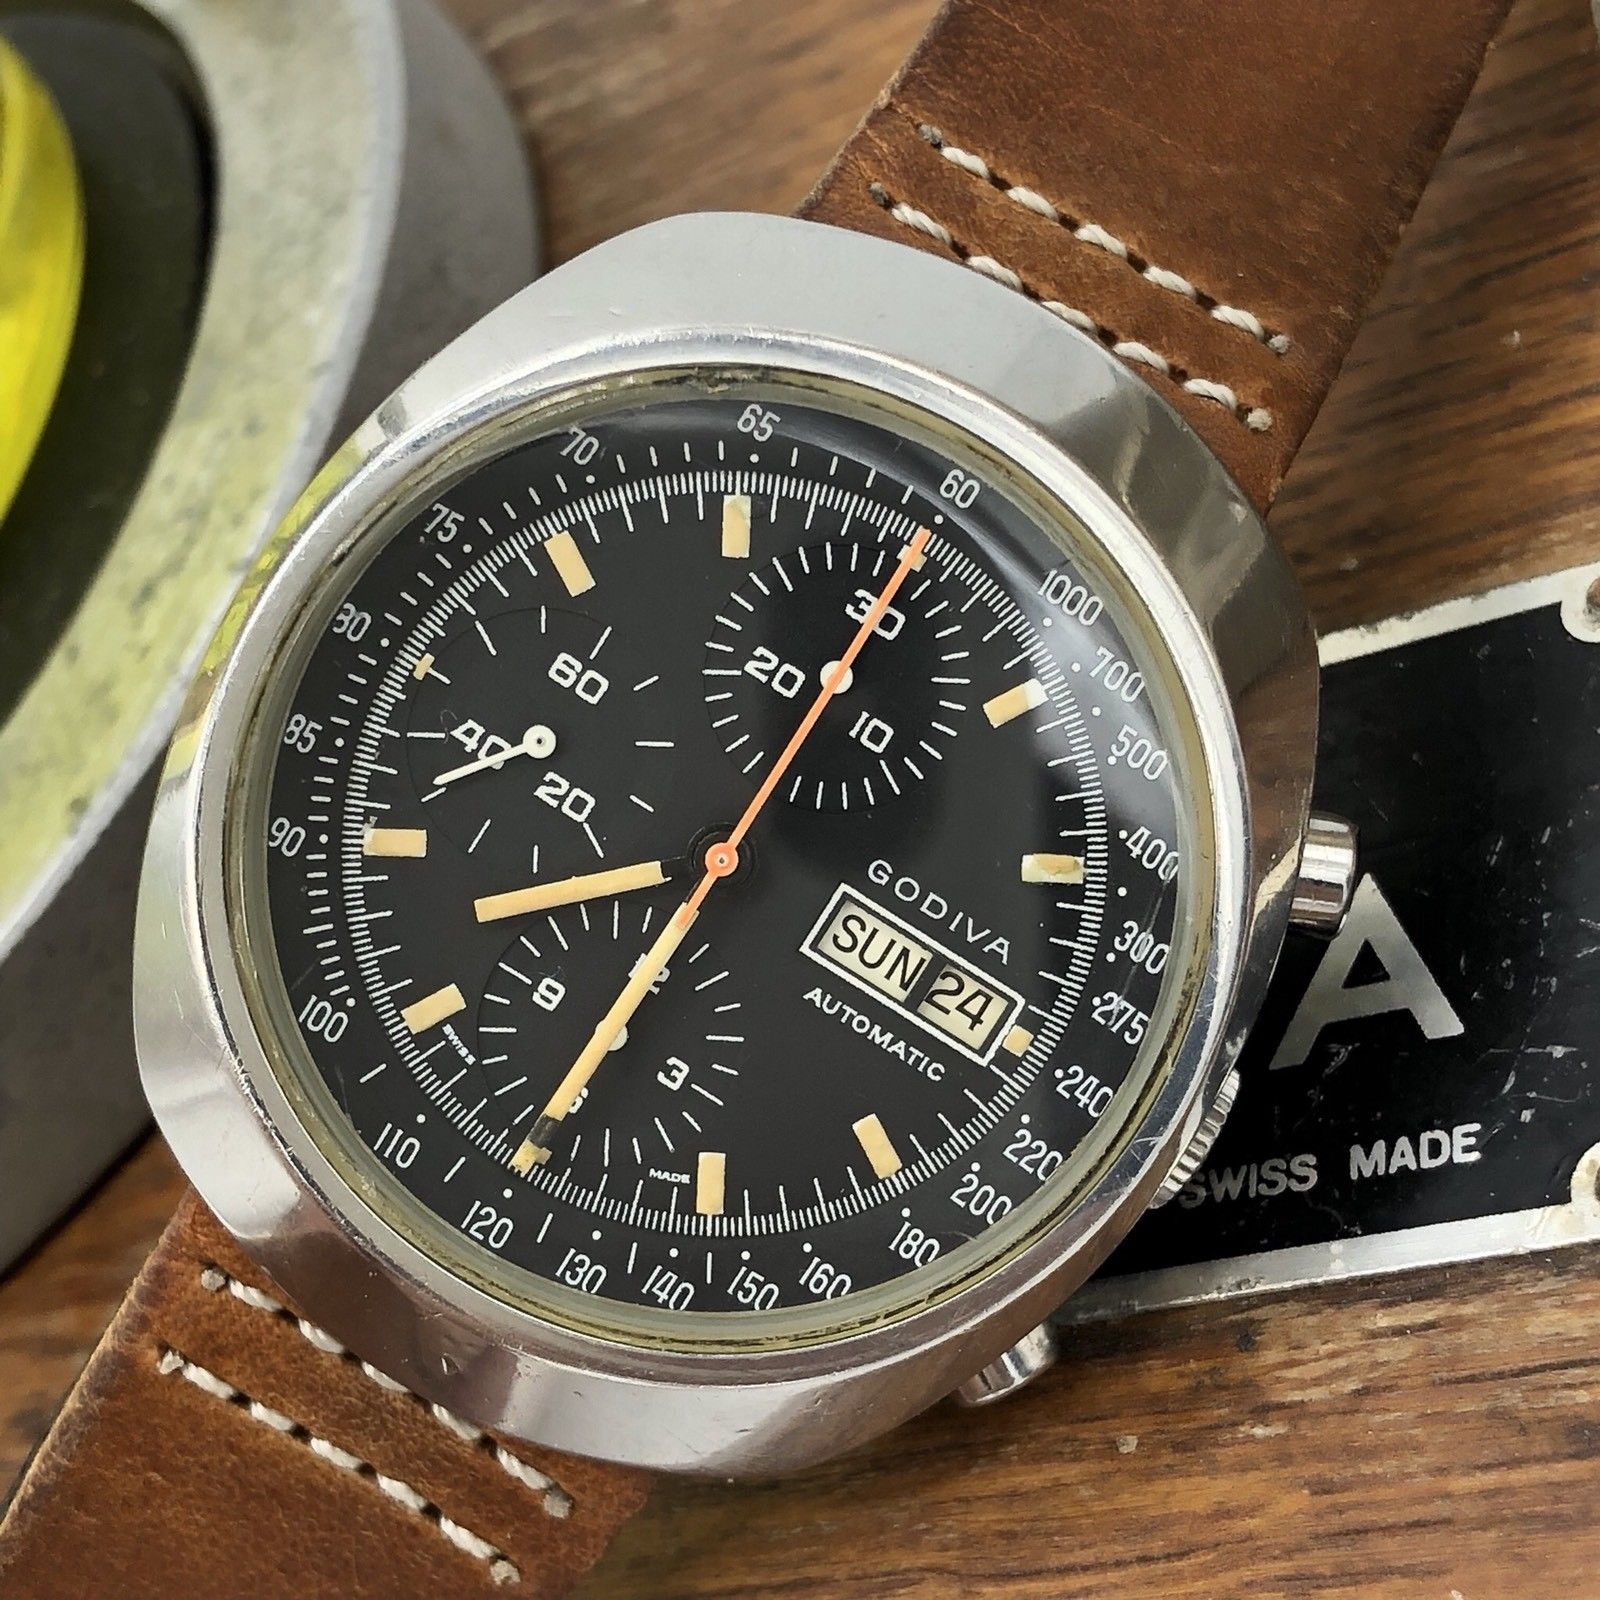 Rare vintage godiva chronograph swiss made watch 38mm 7750eta awadwatches for Watches 38mm